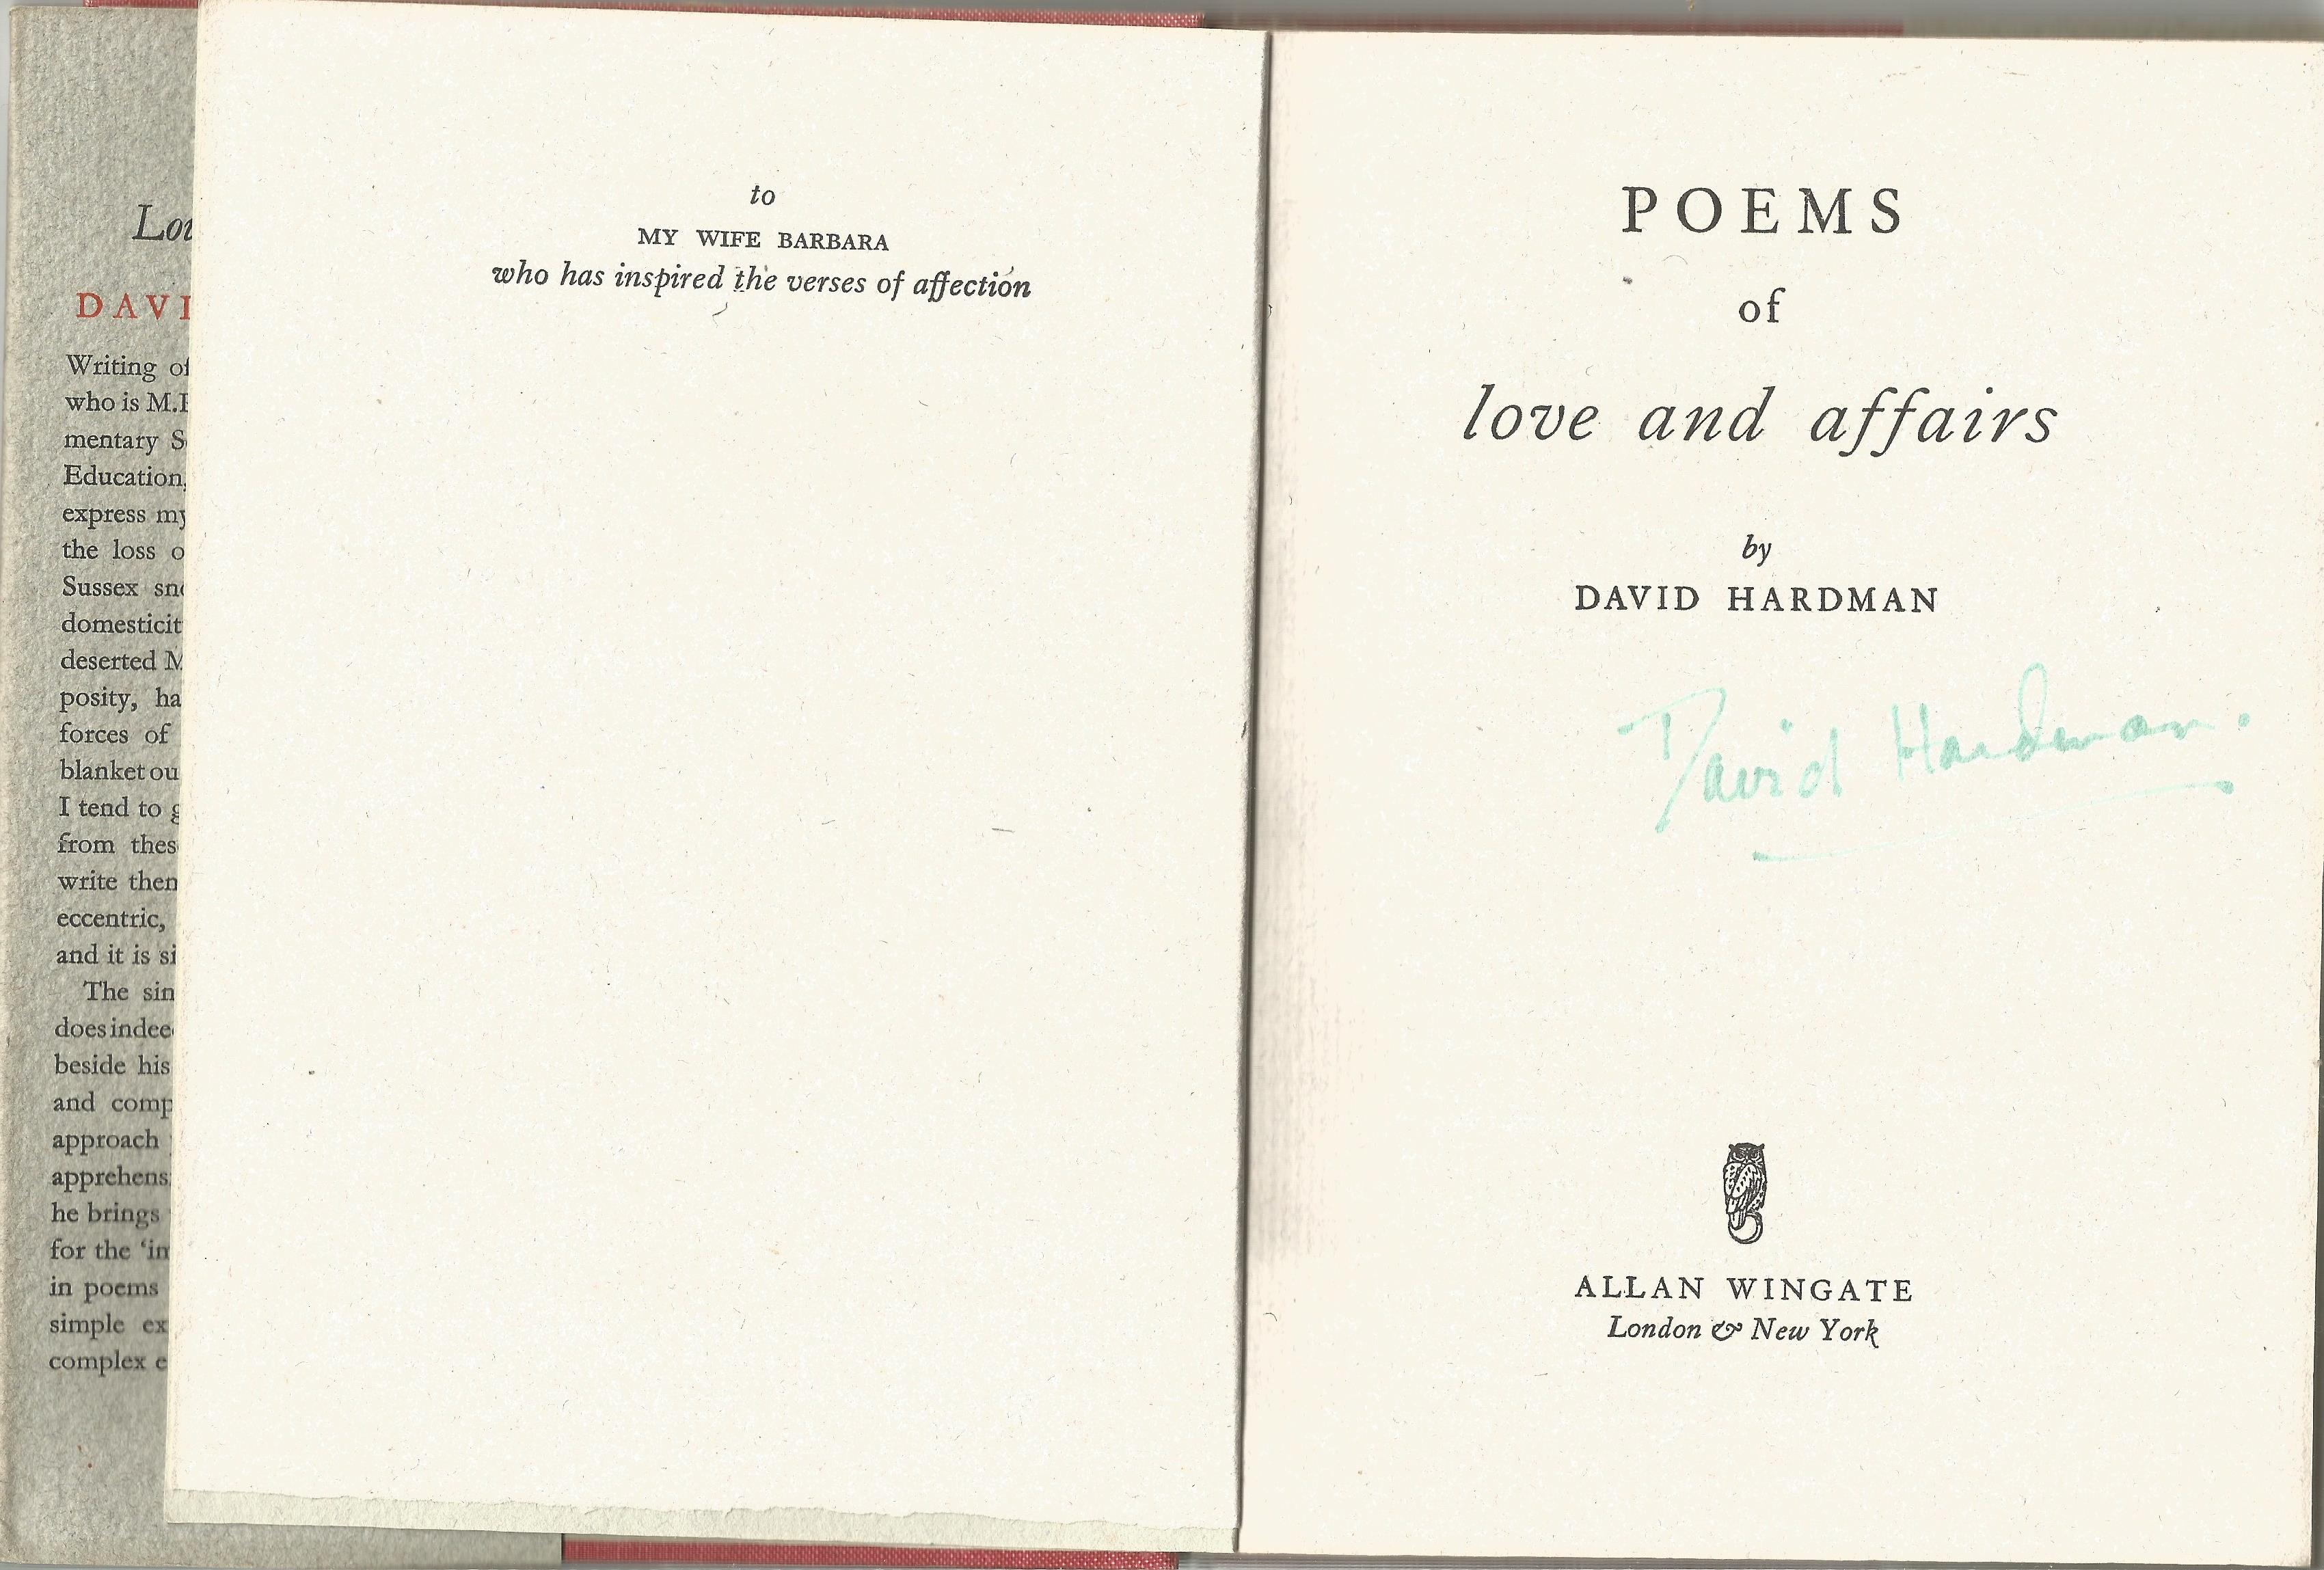 David Hardman Hardback Book Poems of Love and Affairs signed by the Author on the Title Page dated - Image 3 of 3